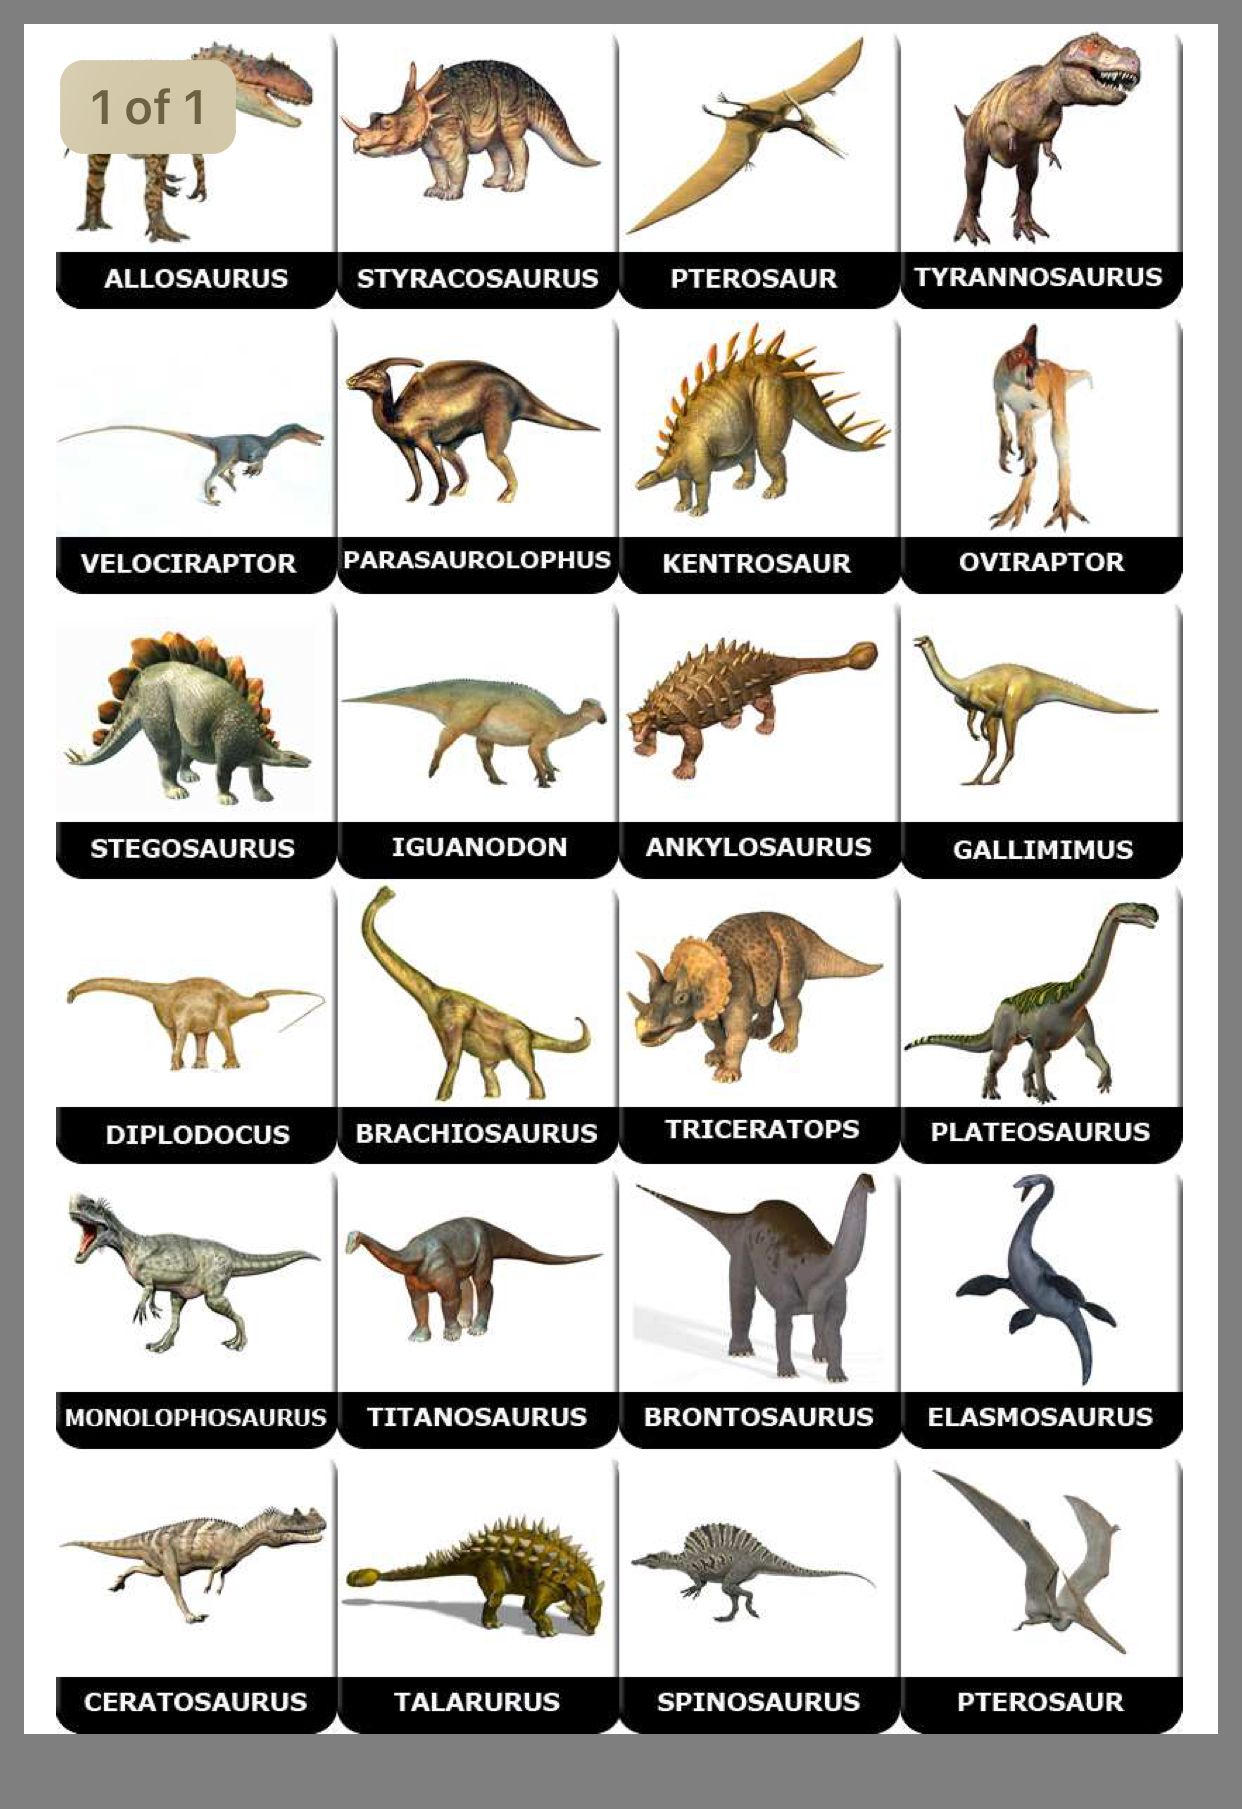 Pin By Eishacullen On Dinosour Dinosaur Posters Dinosaur Pictures Dinosaurs Names And Pictures Vernacular names edit wikidata 'category:dinosaurs' linked to current category edit wikidata 'dinosaur' main topic of 'category:dinosaurs'. dinosaur posters dinosaur pictures